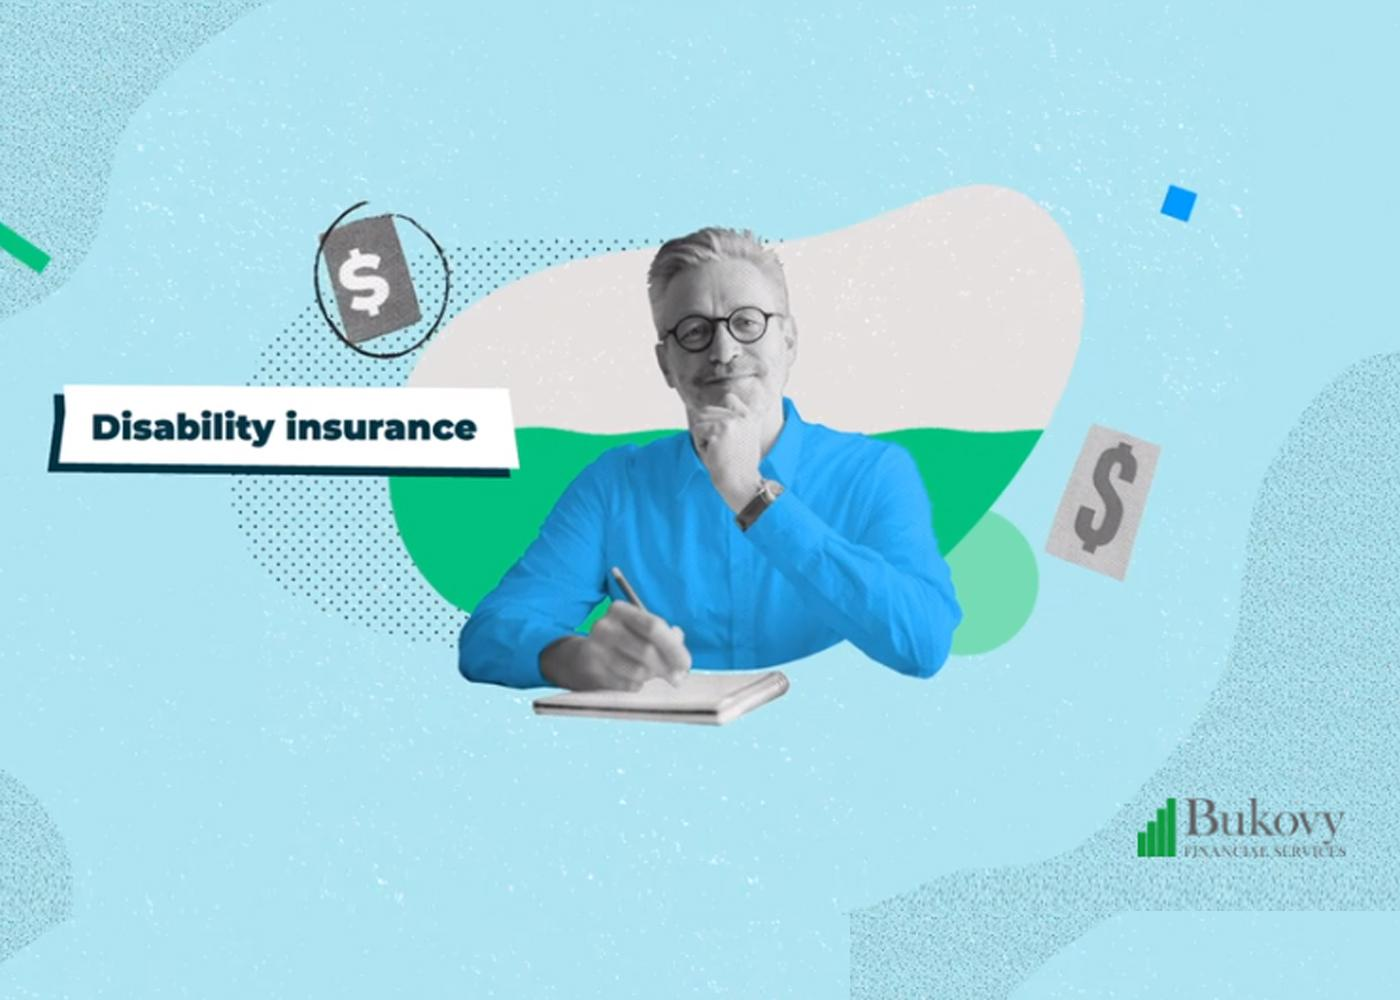 Disability Insurance Thumbnail